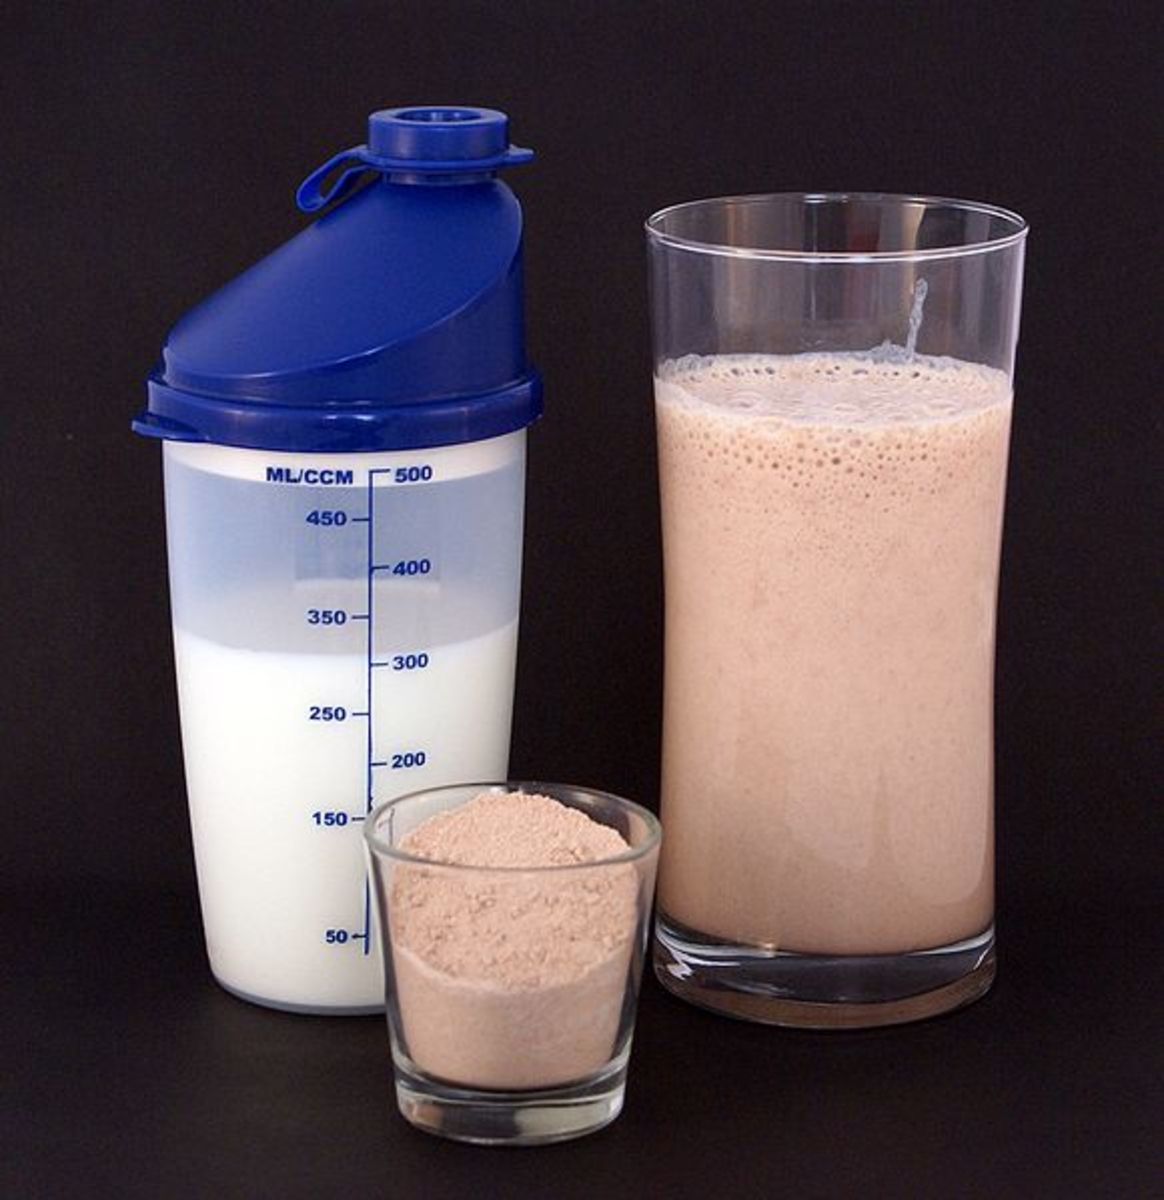 Is that a shot glass of whey protein?!